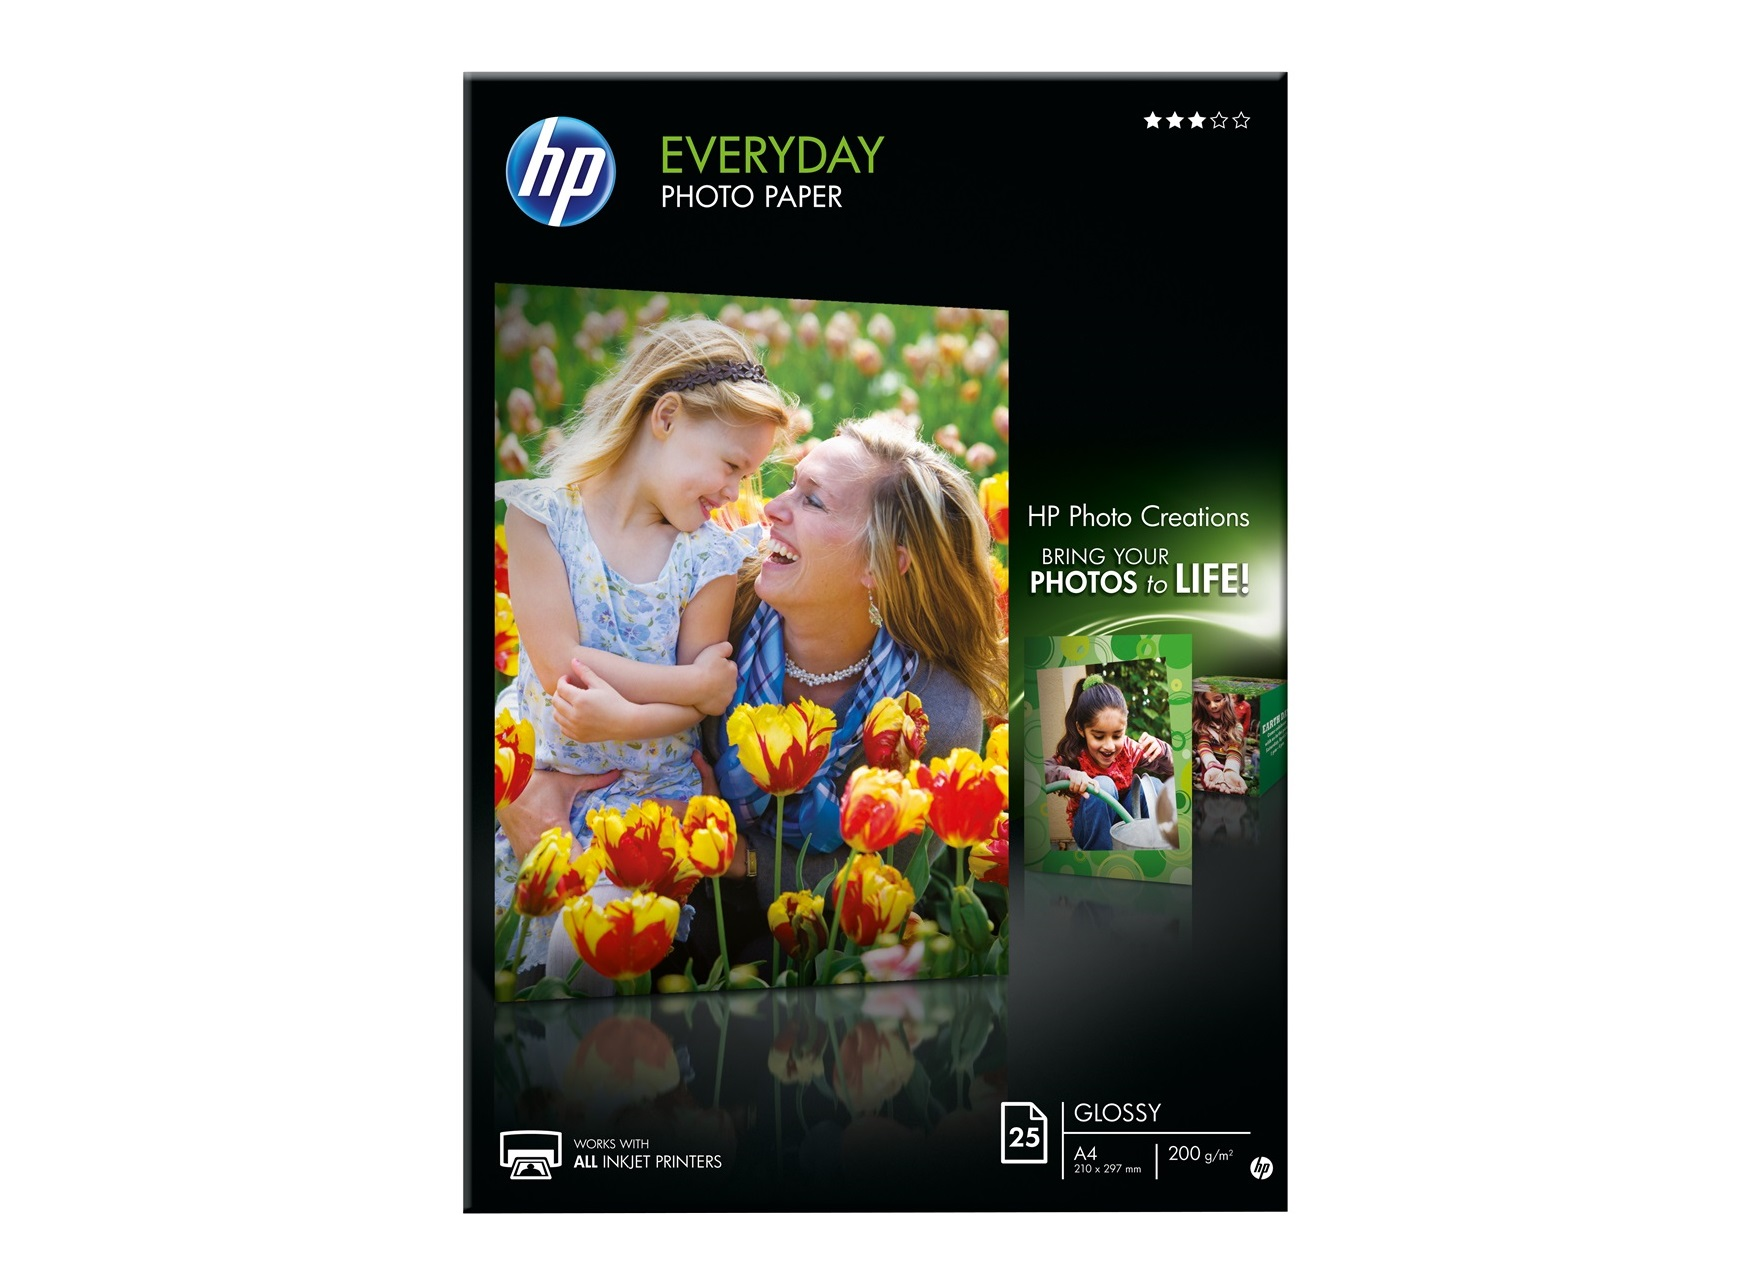 HP Everyday 200g/m A4/25ks 299 Kč